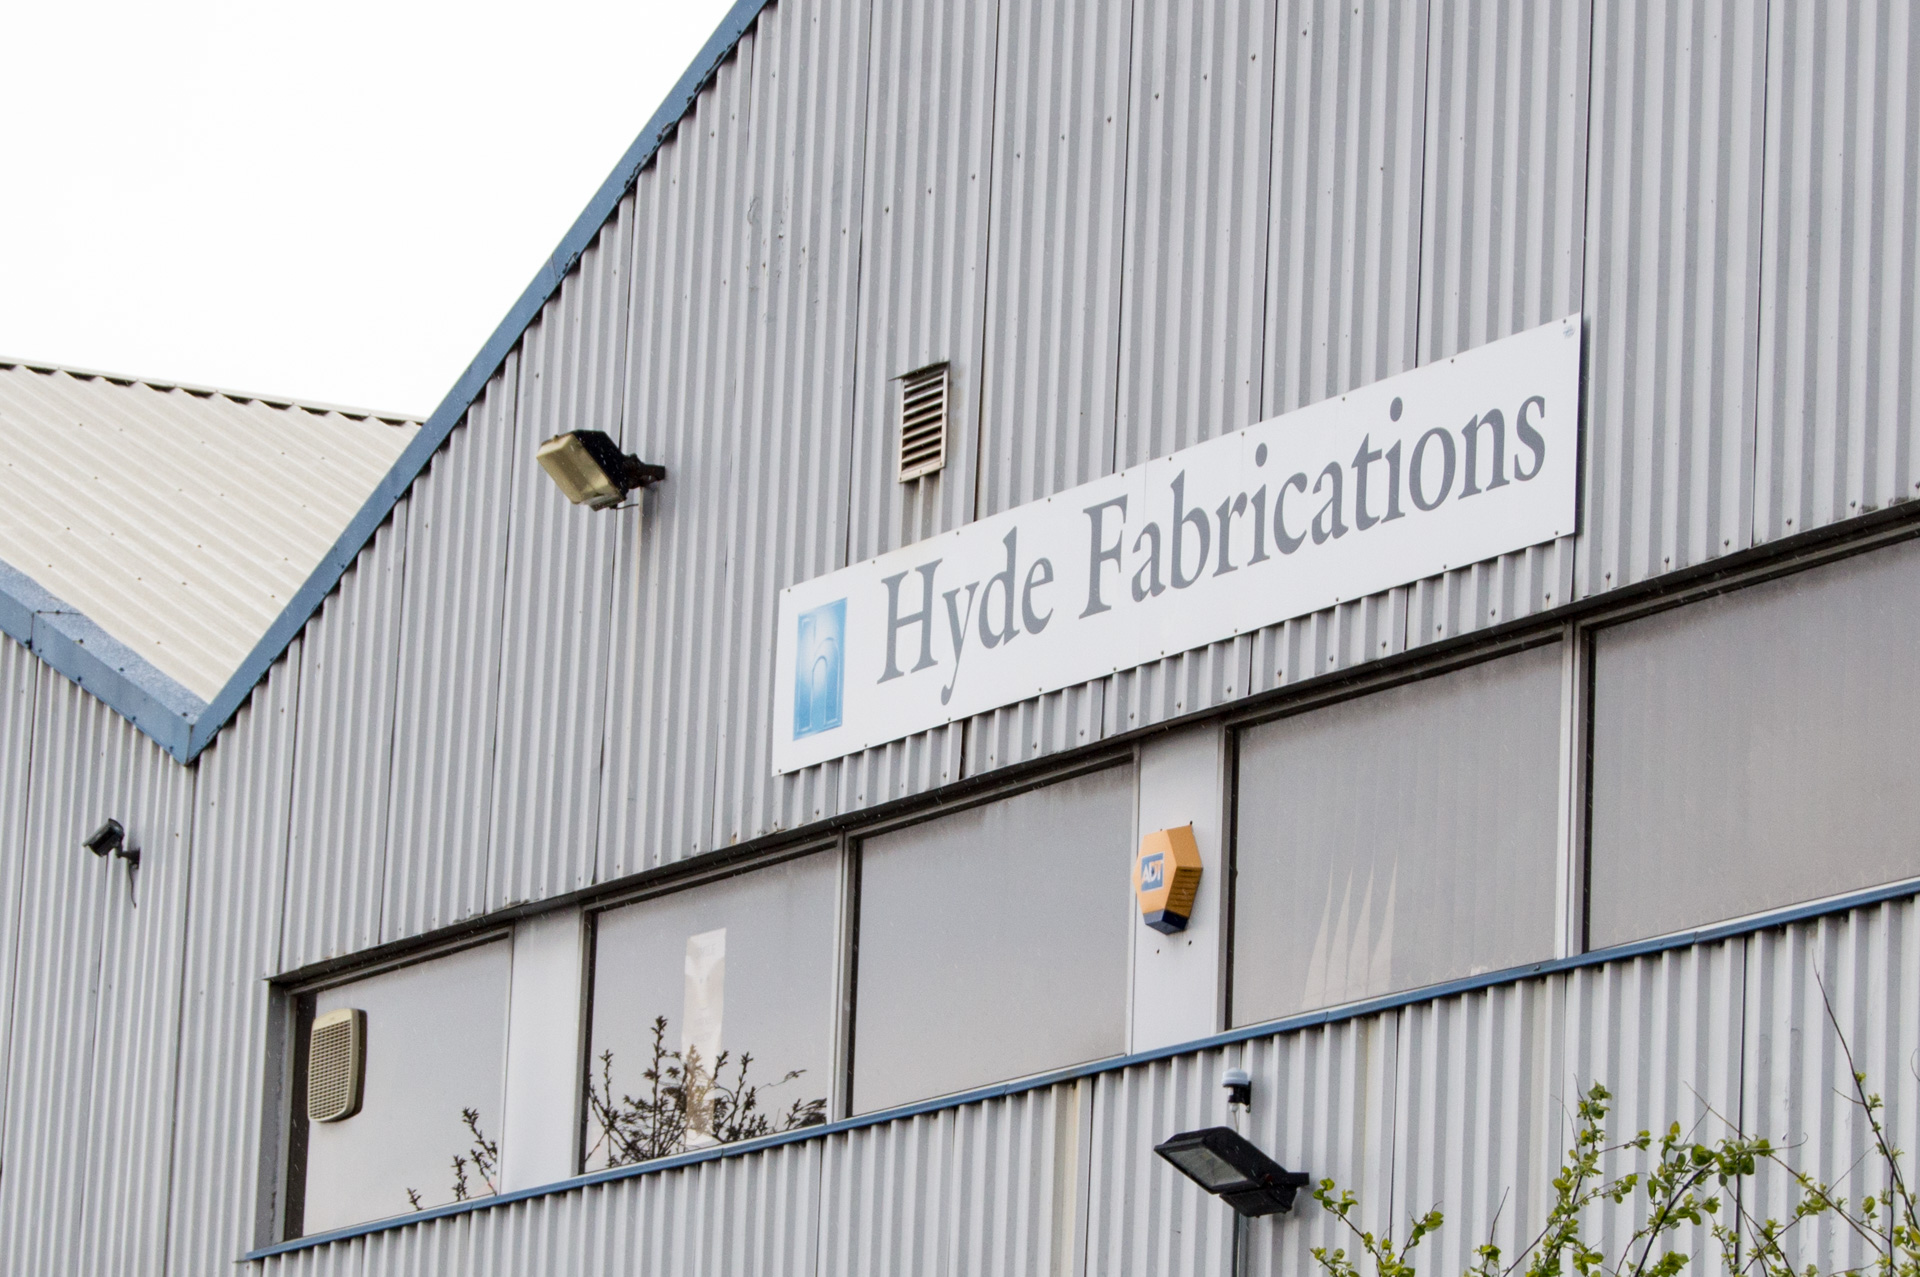 Hyde Fabrications Limited